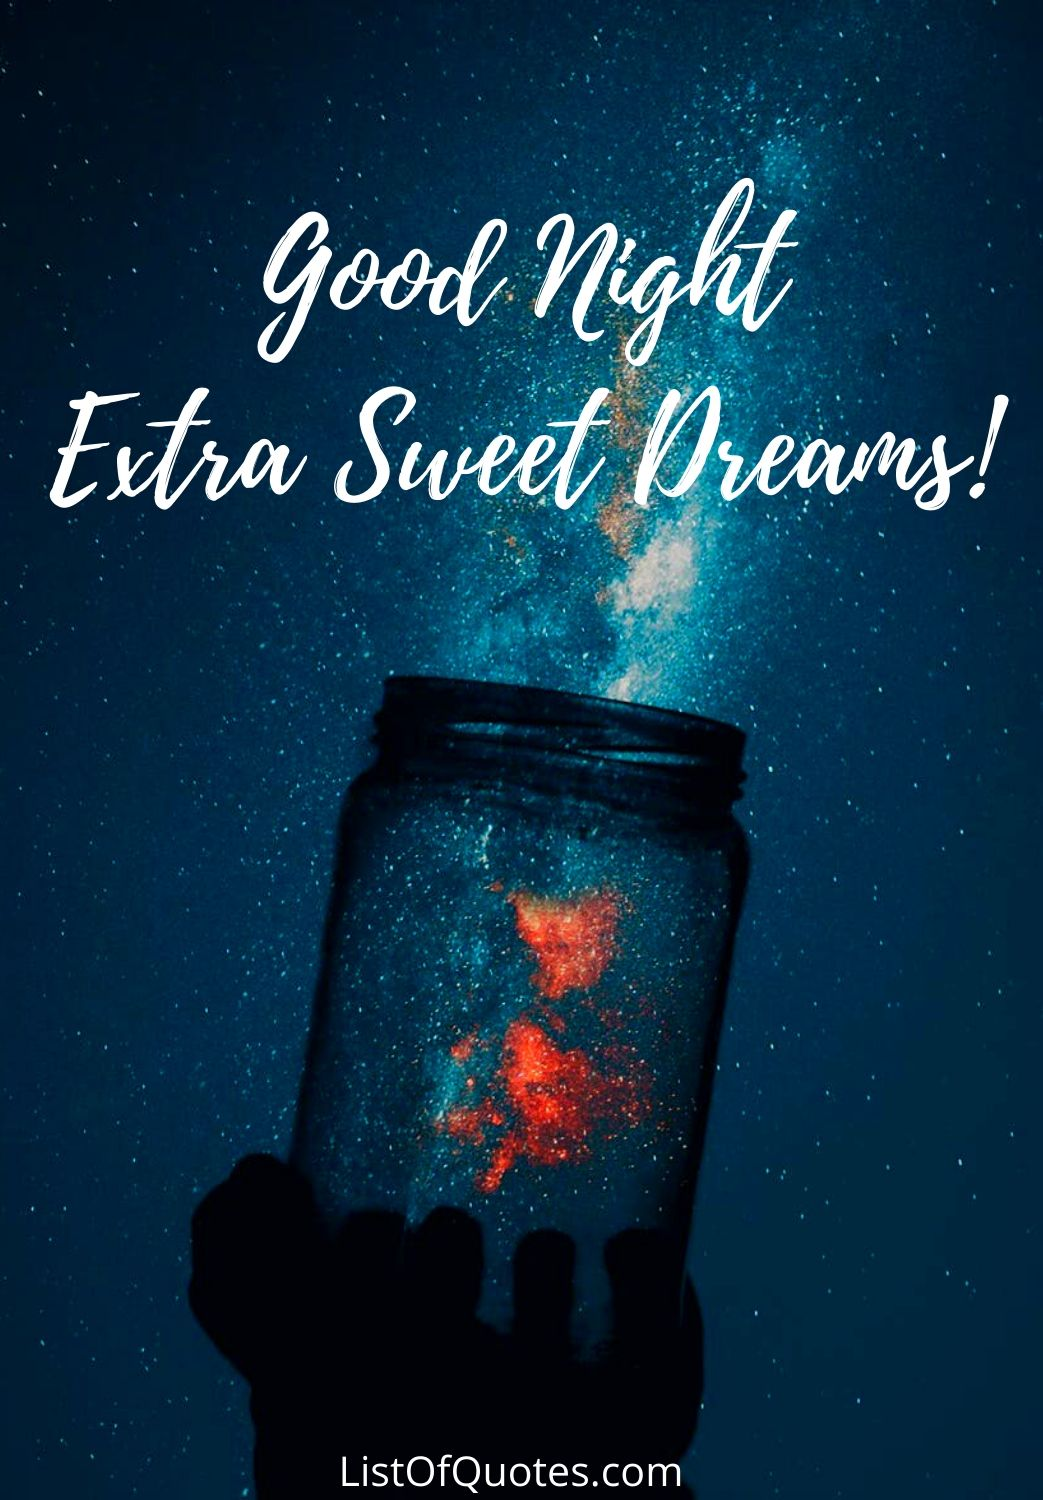 Sweet Dreams Good Night Quotes/Messages/Wishes For Friends(Free Download)